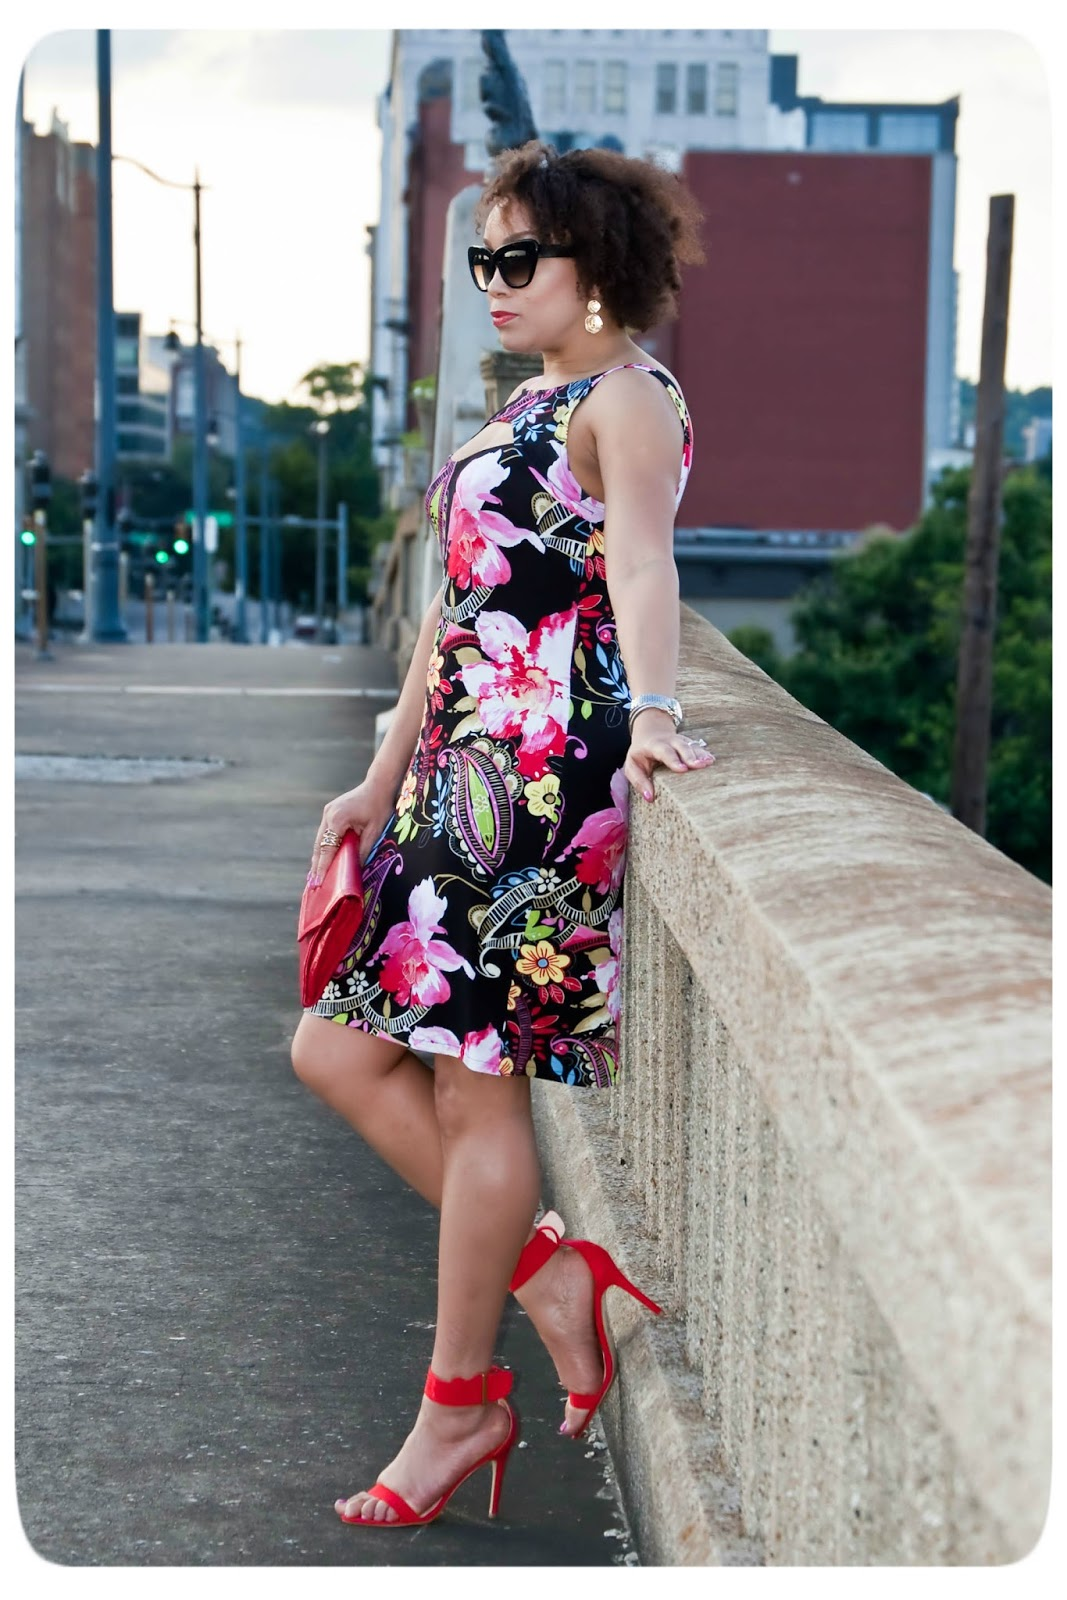 Cutouts and Florals - Erica B's DIY Style!